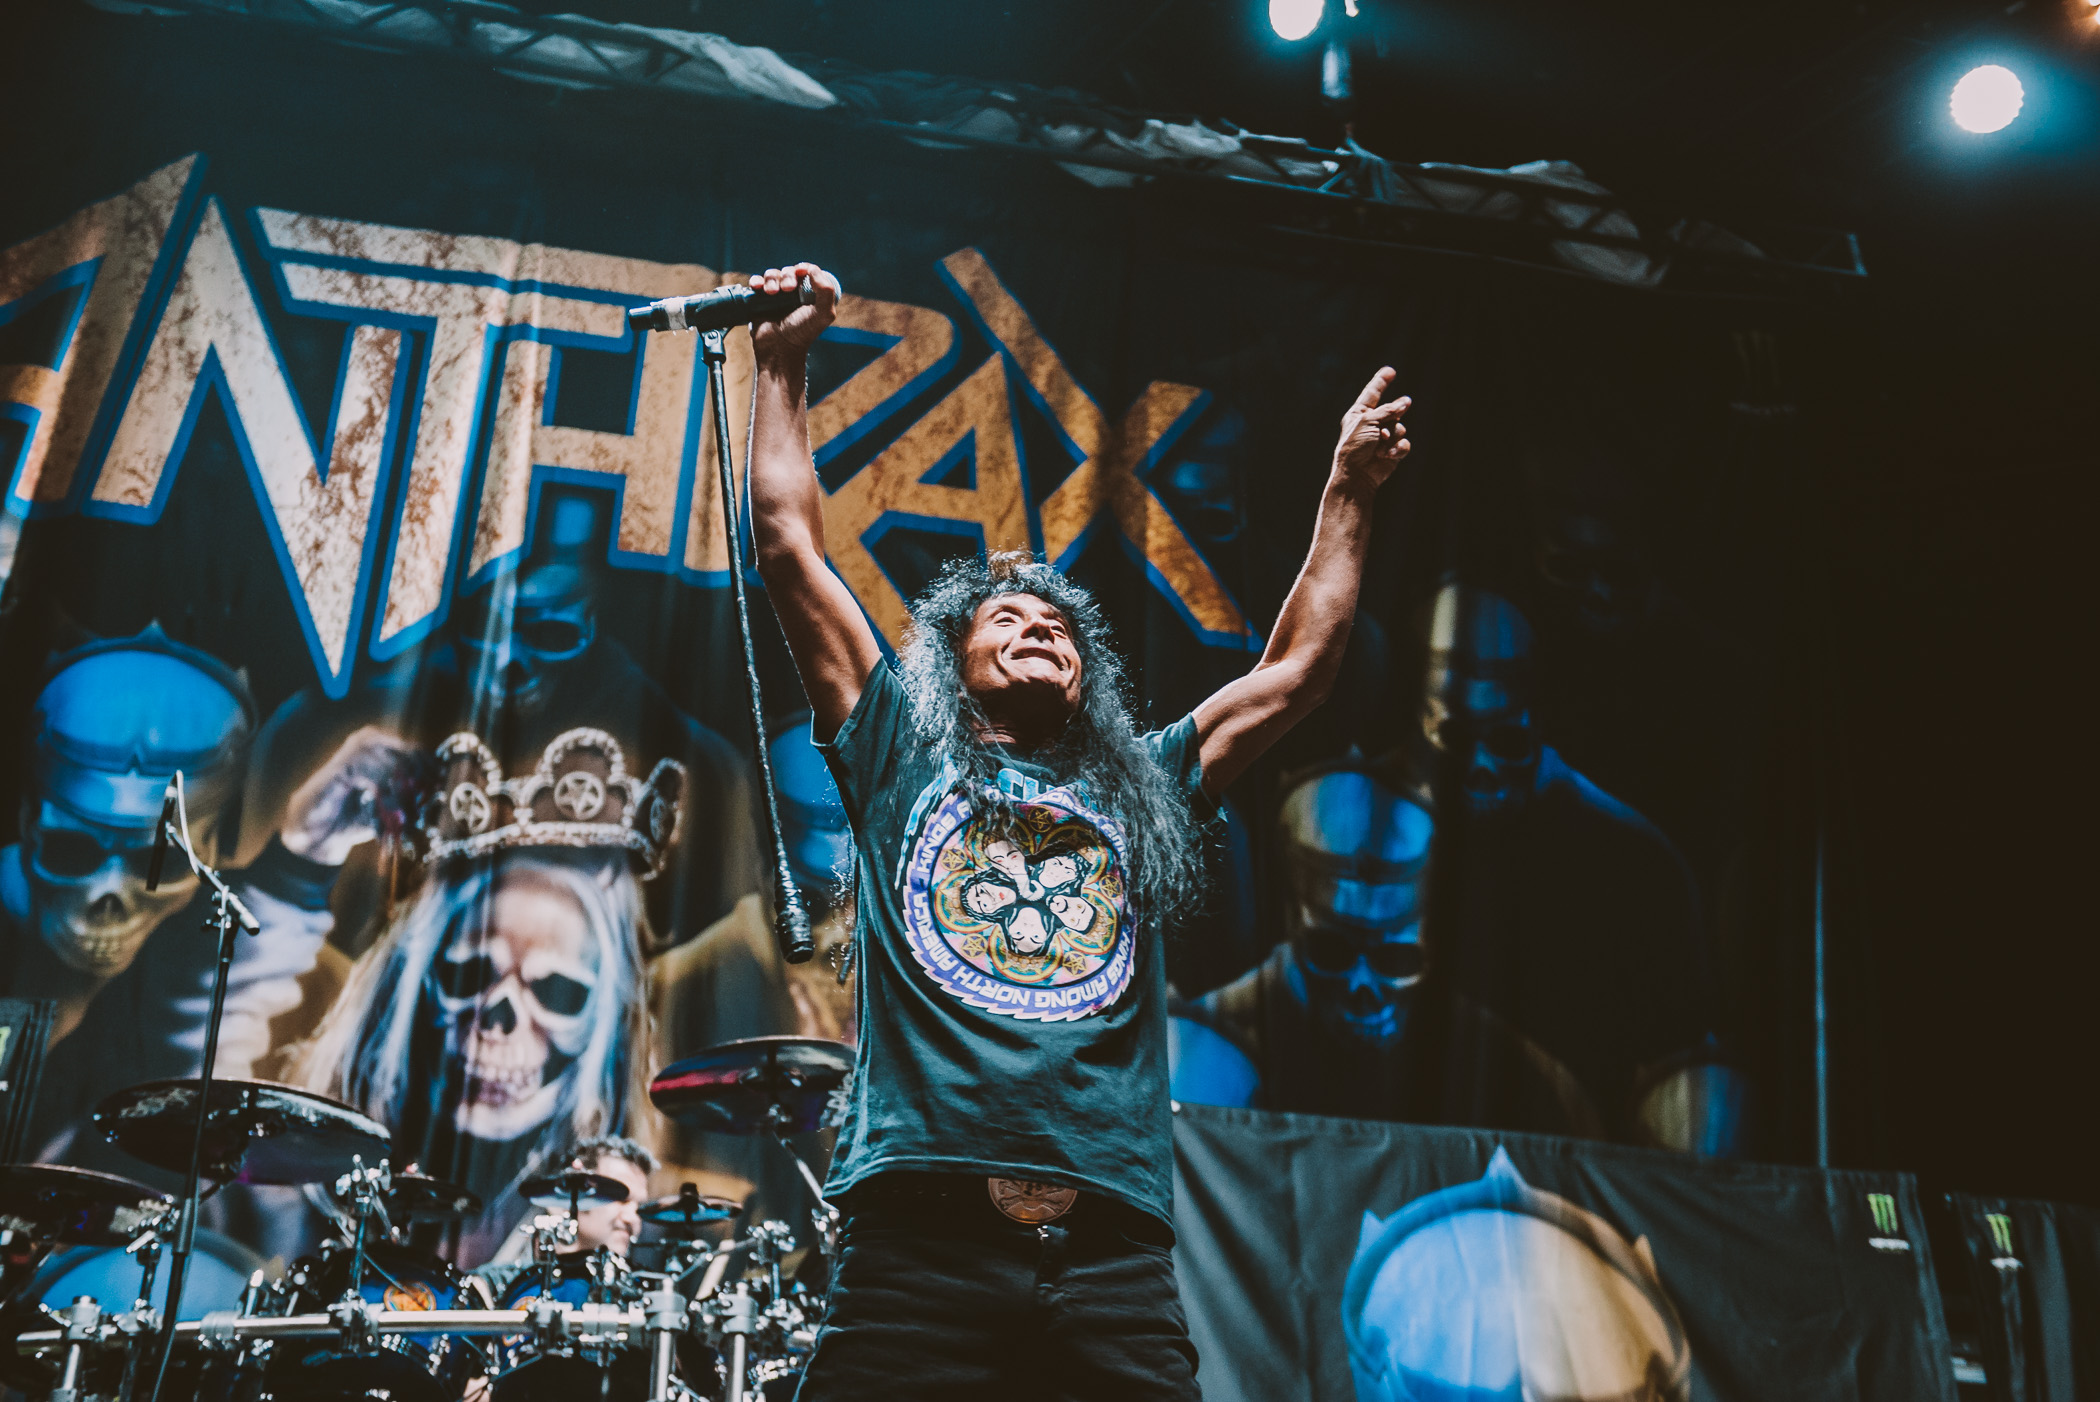 3_Anthrax-Pacific_Coliseum-Timothy_Nguyen-20180516-24.jpg